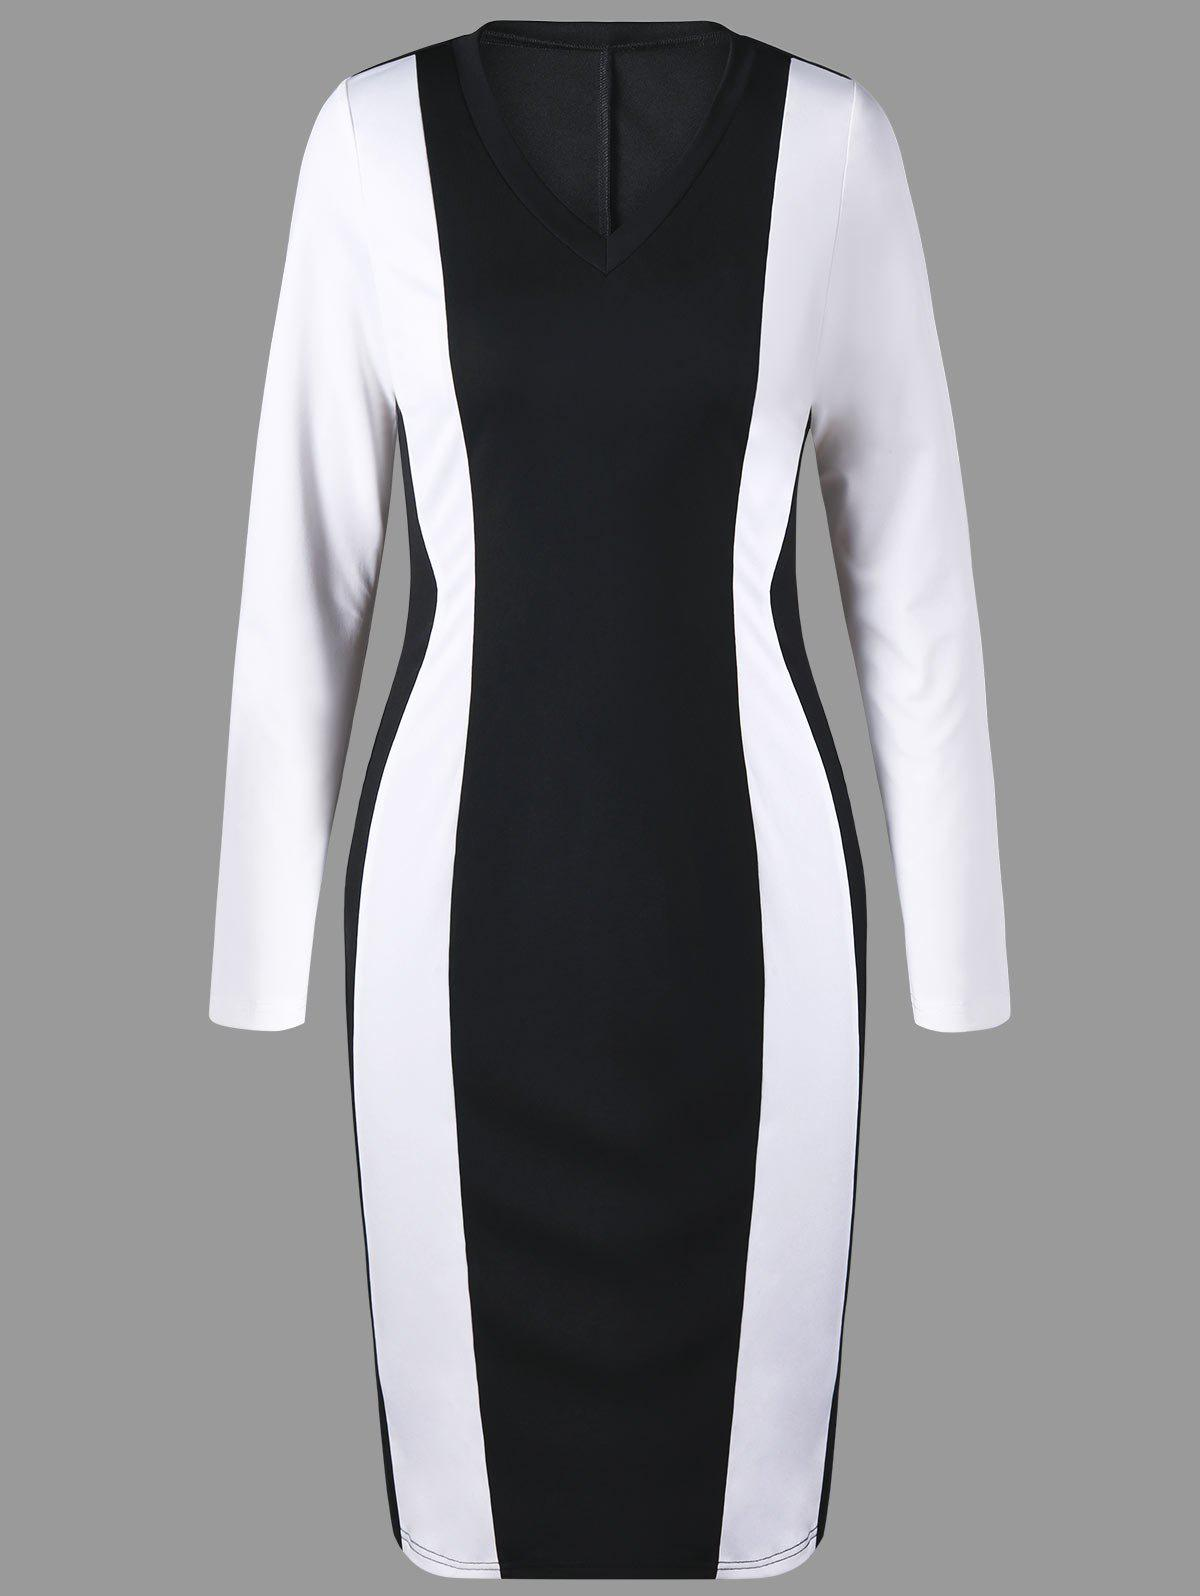 Two Tone V Neck Sheath Dress - WHITE/BLACK M